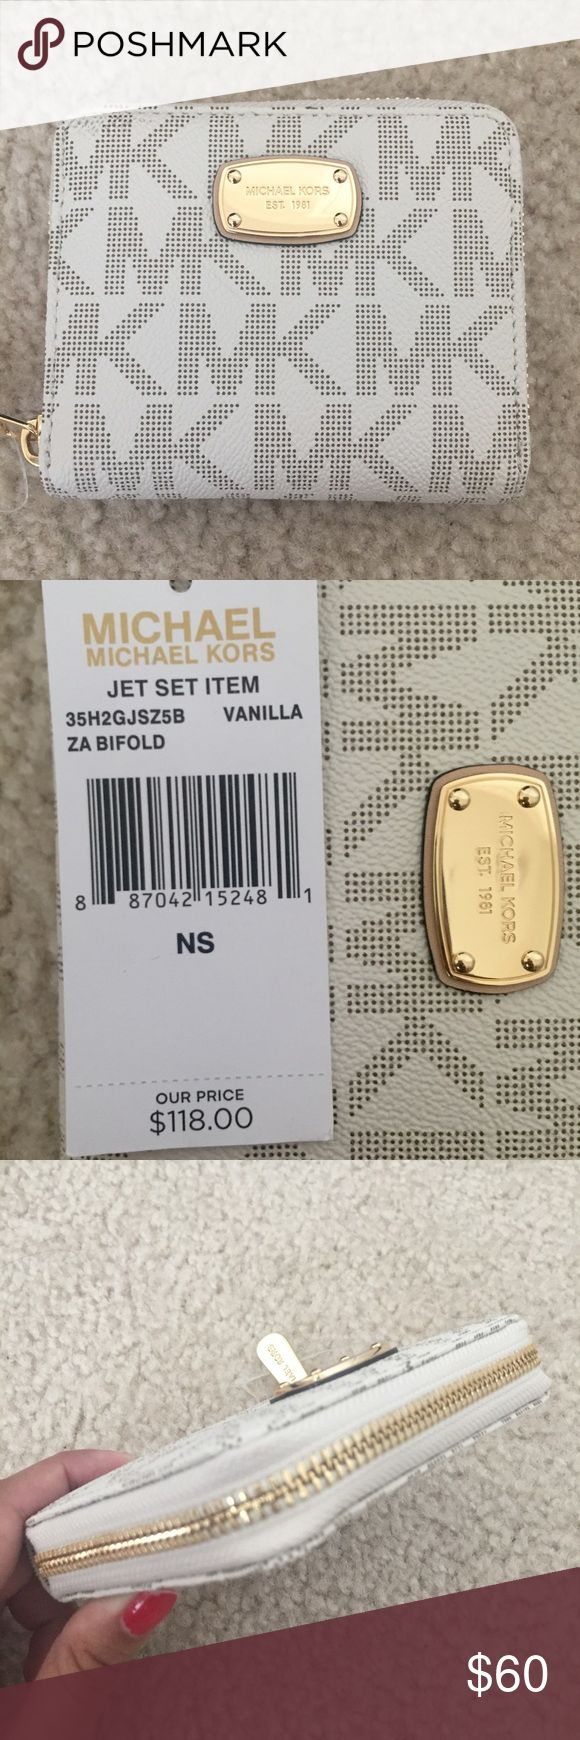 NWT Michael Kors Zip Bifold Vanilla Wallet New with tags. Michael Kors Jet Set Item. In the color Vanilla. Zip around bifold wallet. Gold Hardware. One full length bill fold compartment, one half length bill compartment, three card slots, and one coin pocket. Michael Kors Bags Wallets